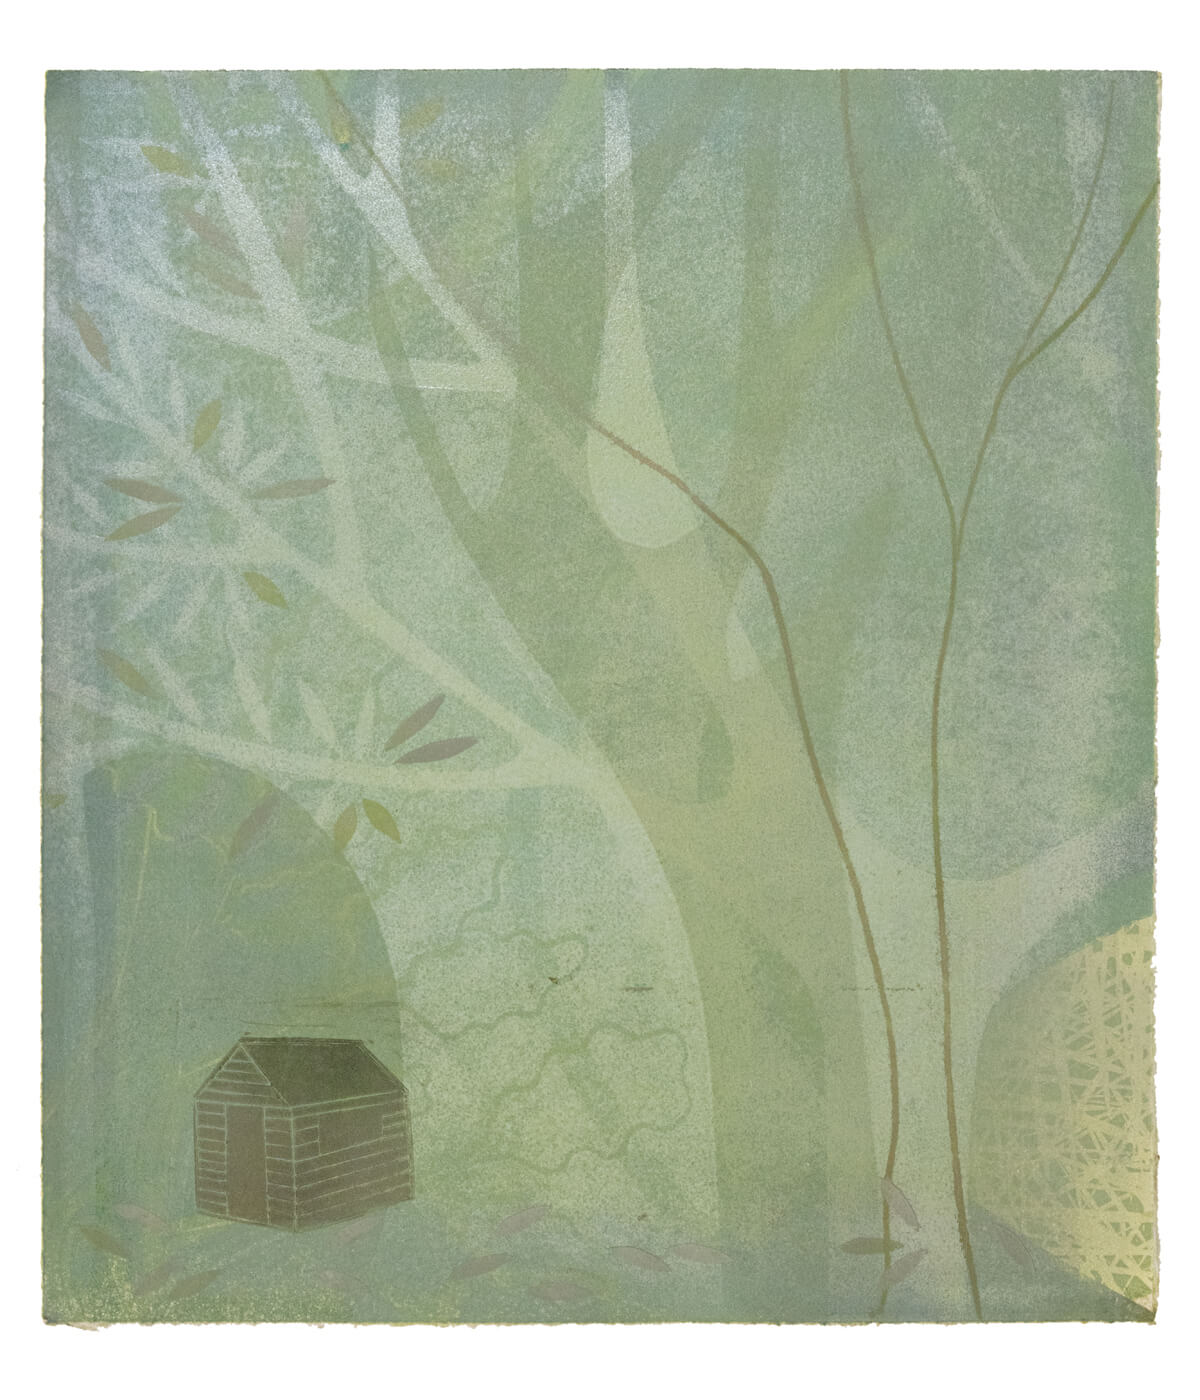 Hut, monotype print by Sarah Kirby